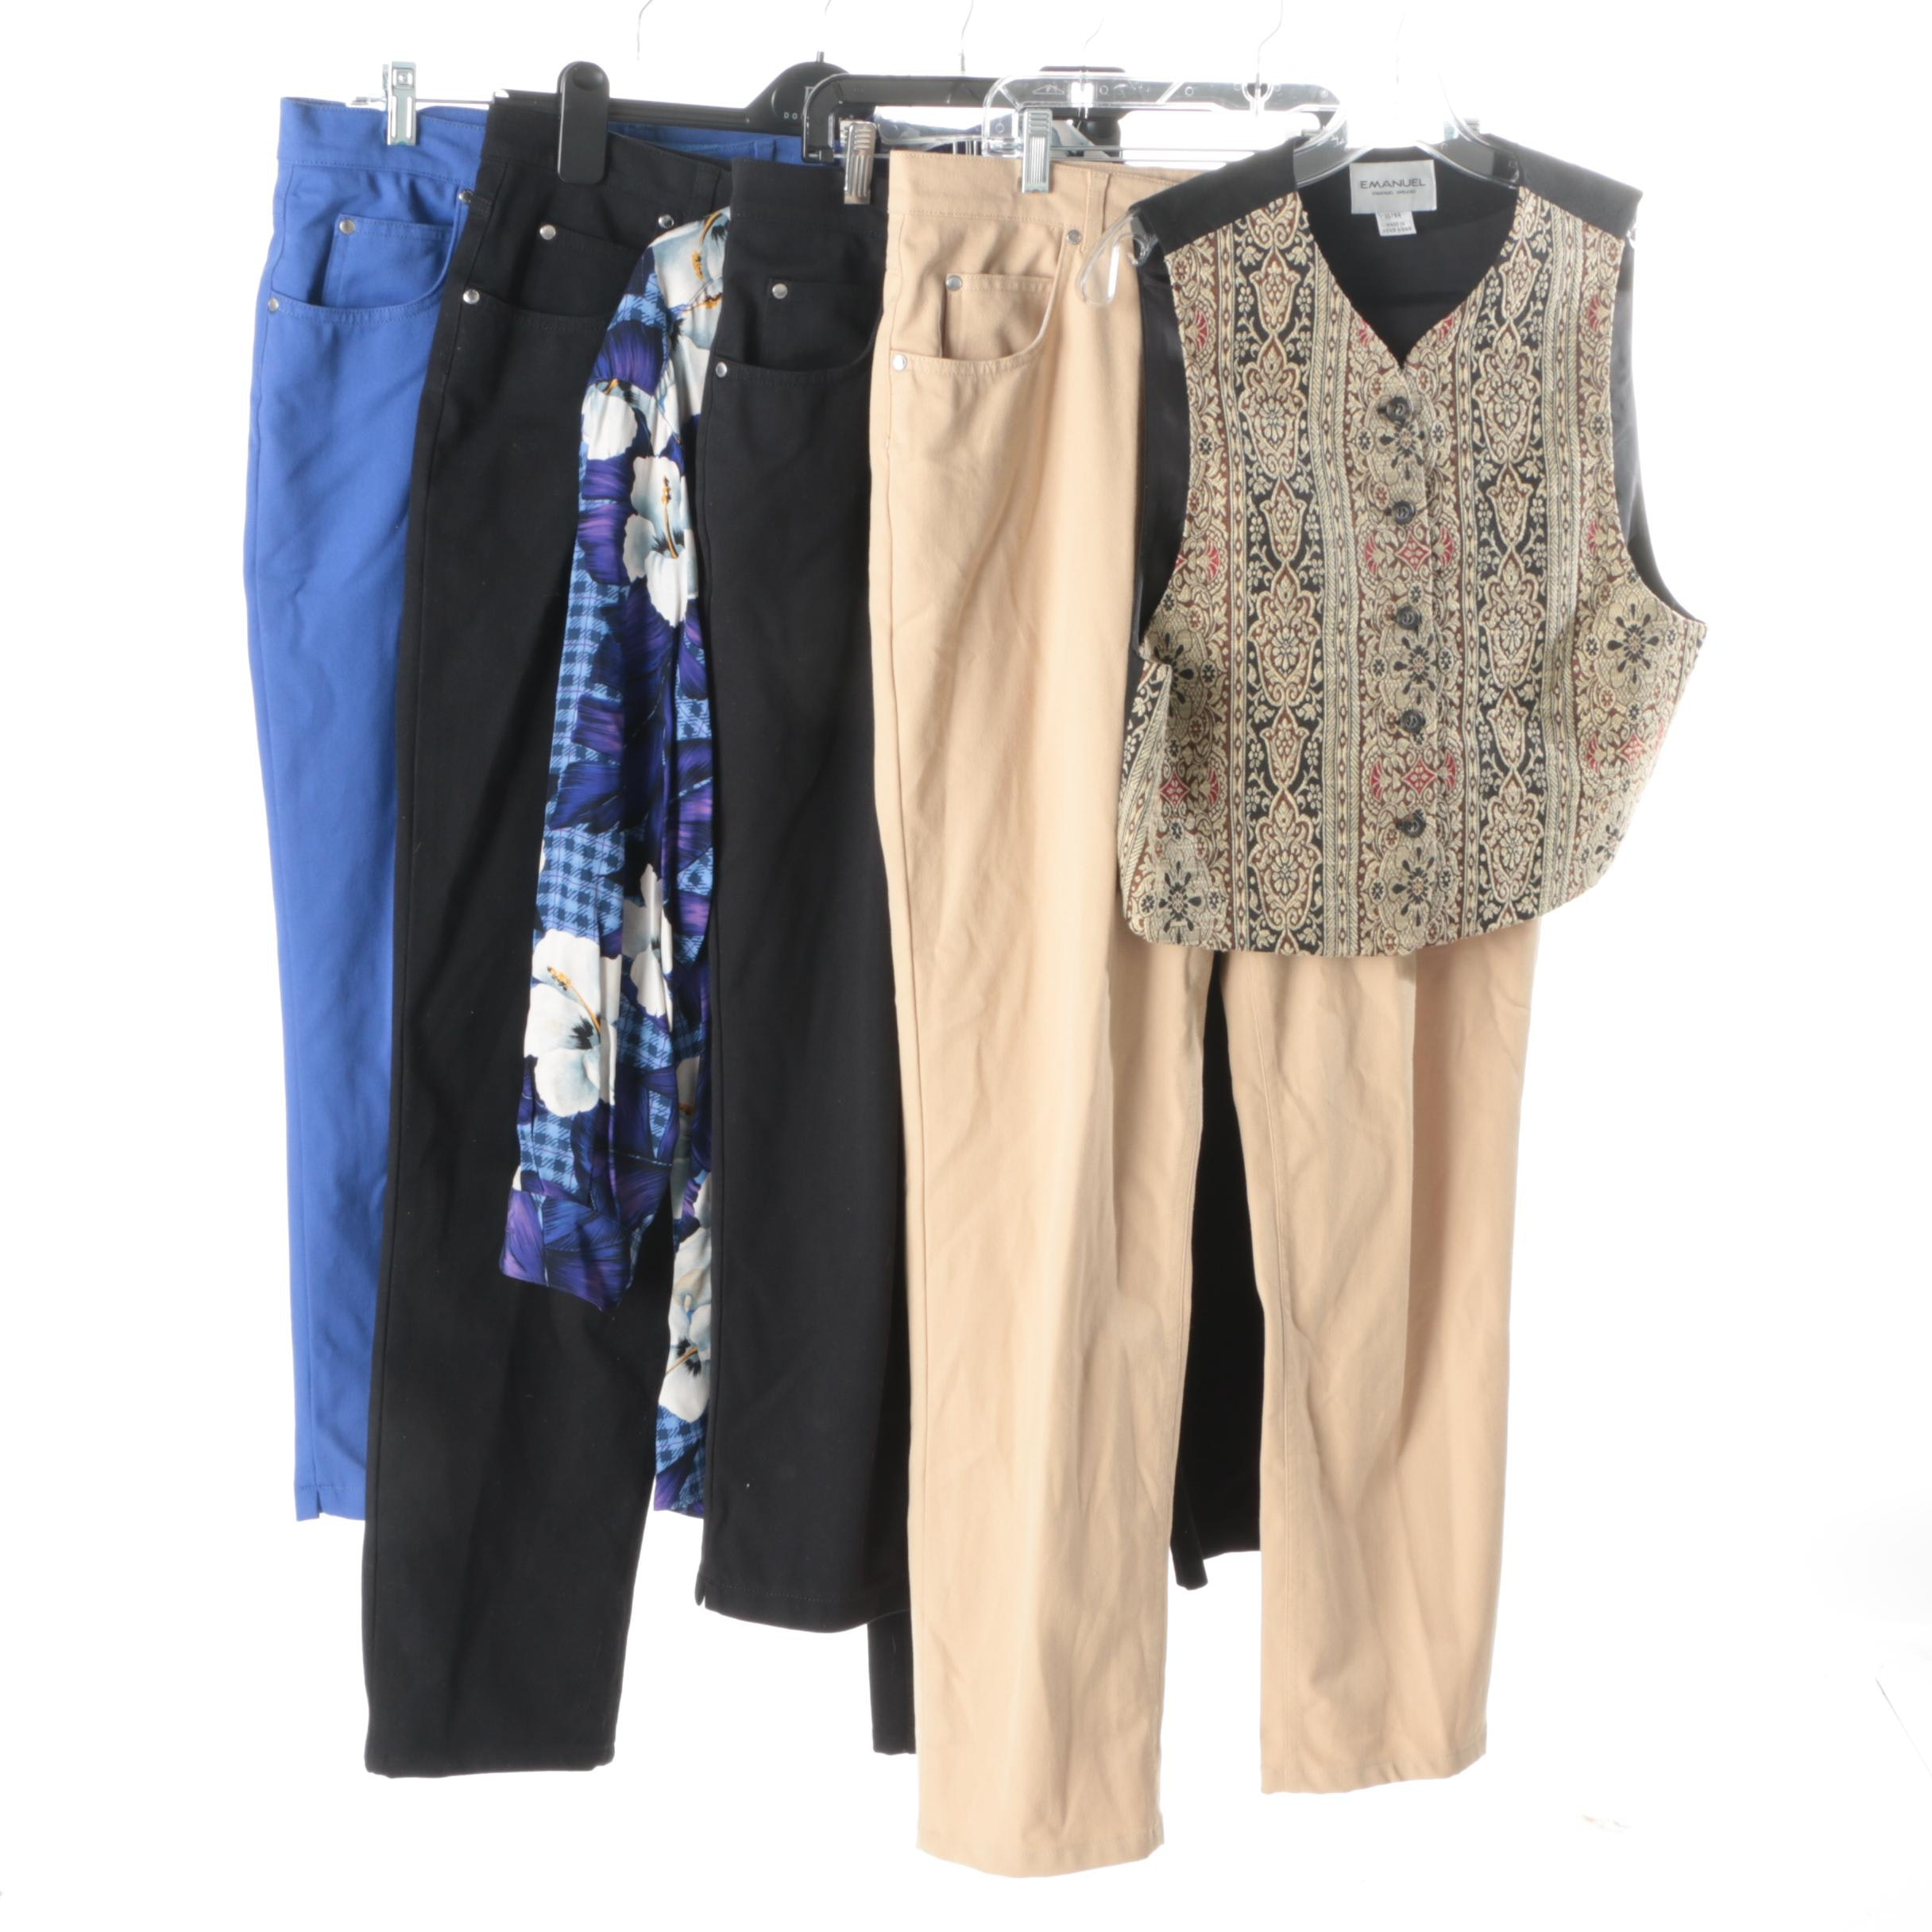 Women's Jeans and Tops Featuring Escada